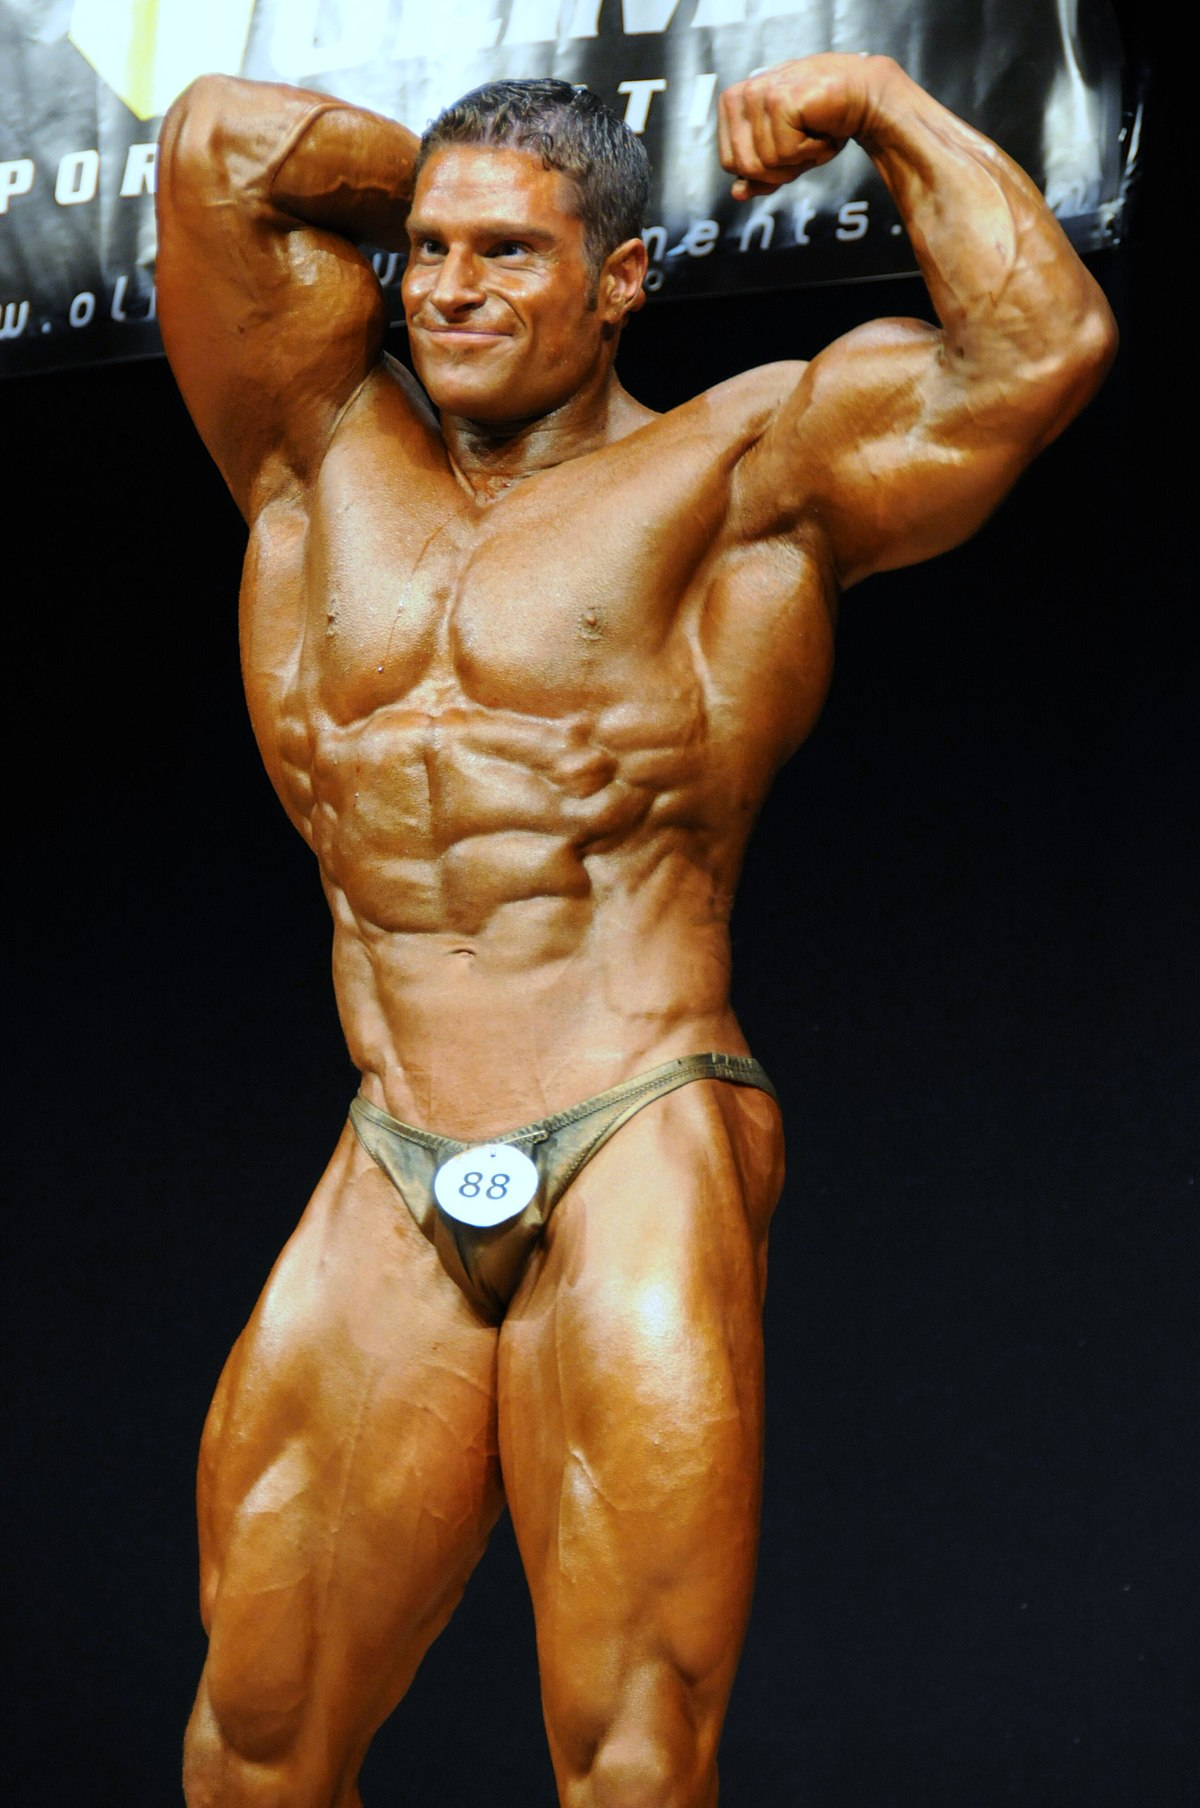 David Hoffmann (Bodybuilder) – Wikipedia